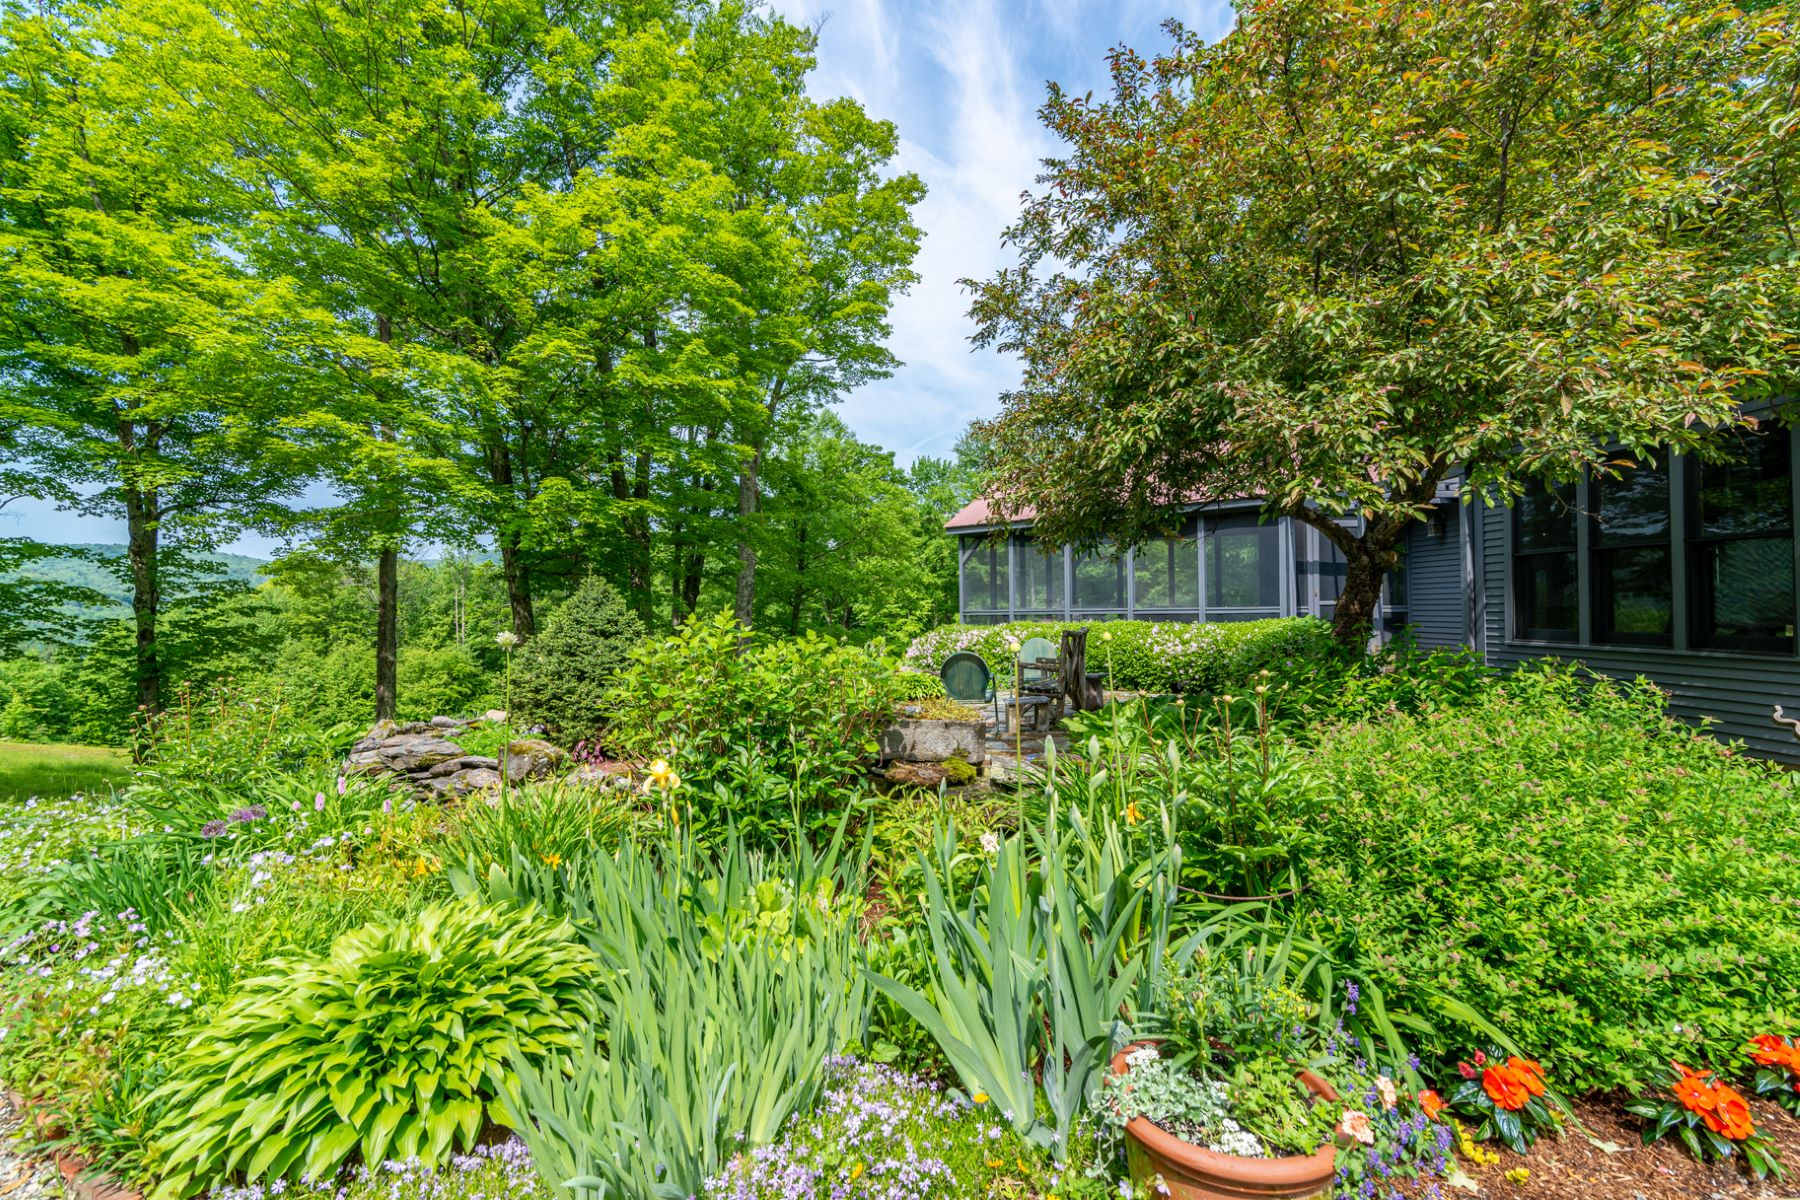 Single Family Homes for Sale at Bucolic Mettowee Valley Oasis 2731 Herrick Brook Rd Pawlet, Vermont 05761 United States